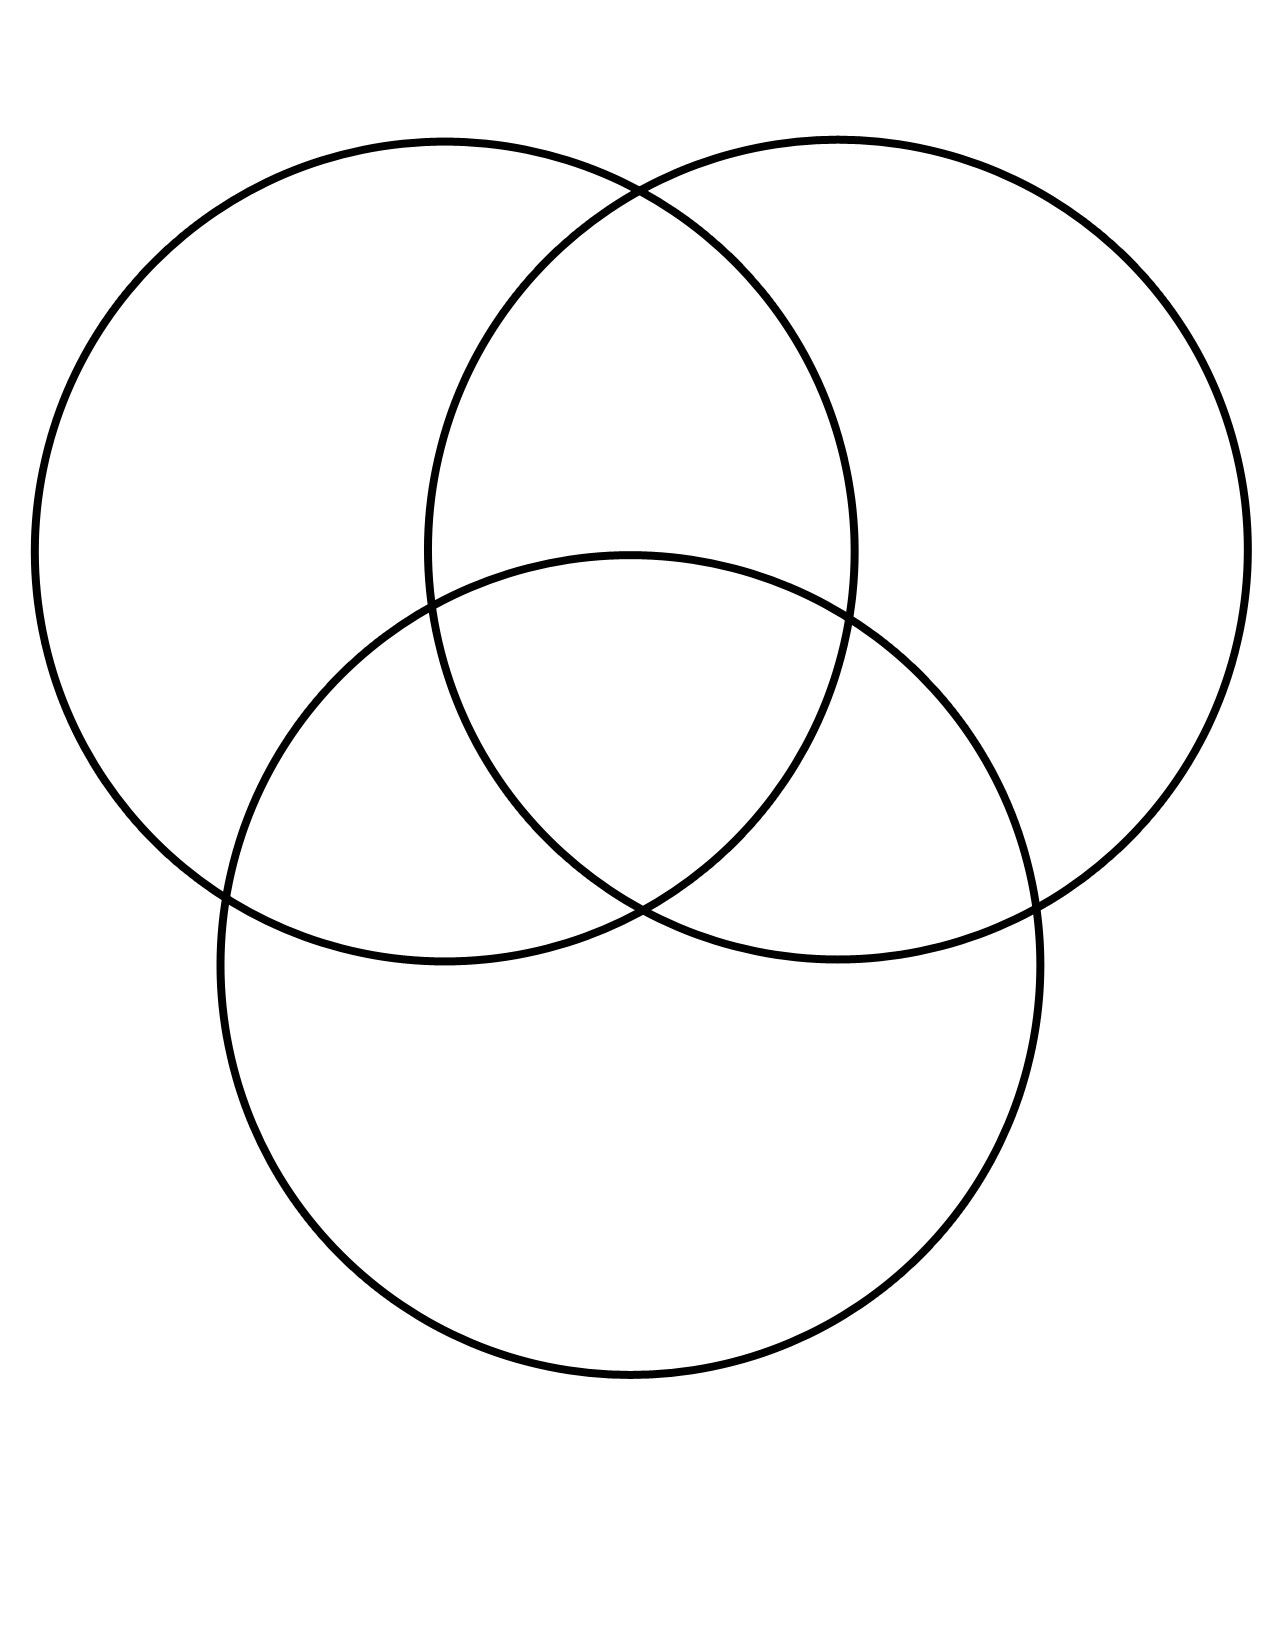 8 Venn Diagram Word Problems With 3 Circles Worksheet